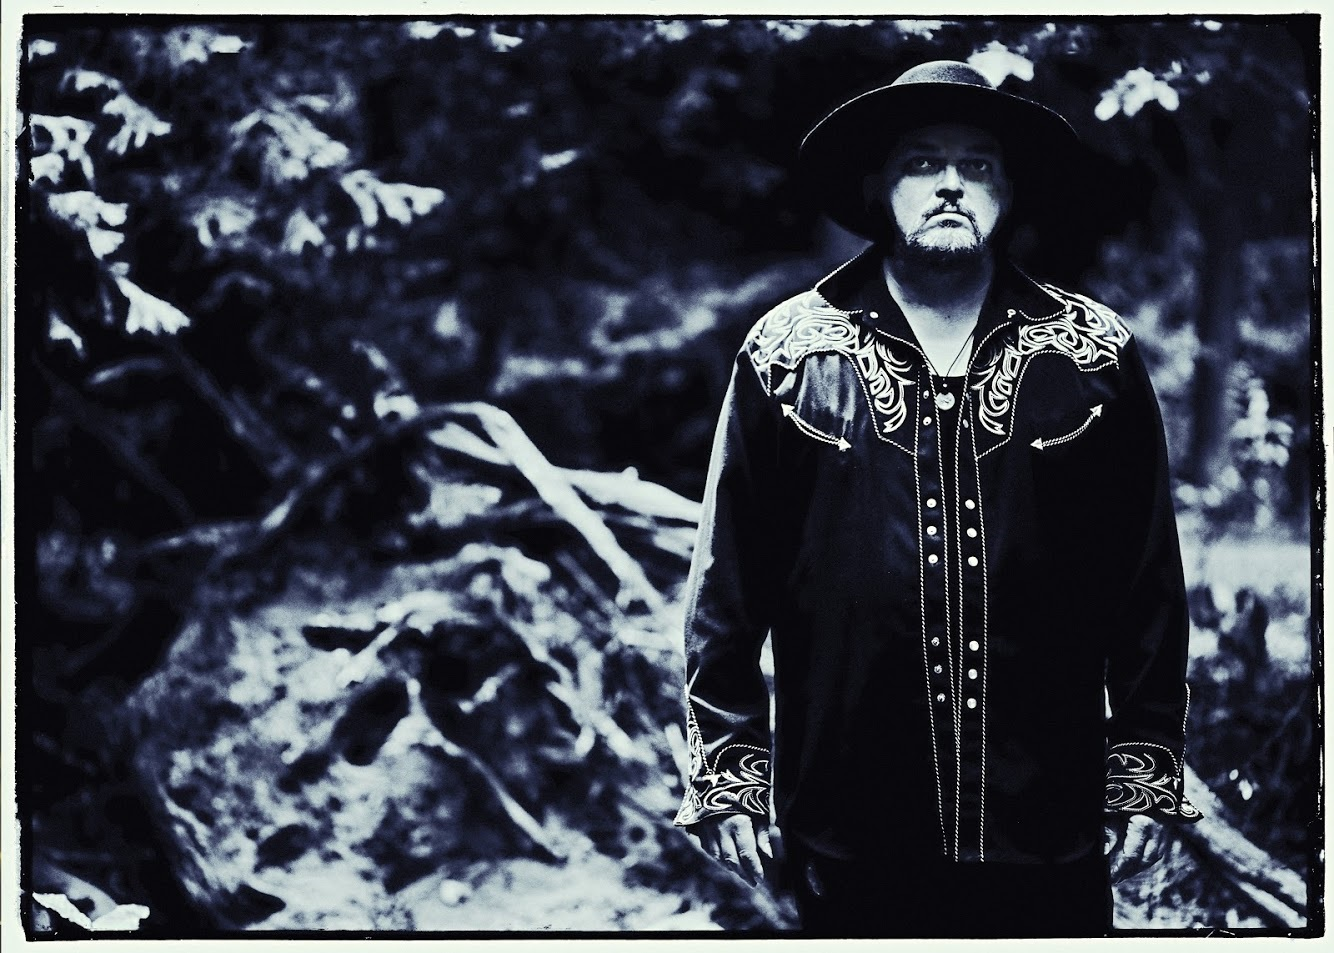 Alain Johannes (Photo by Tom Bronowski)